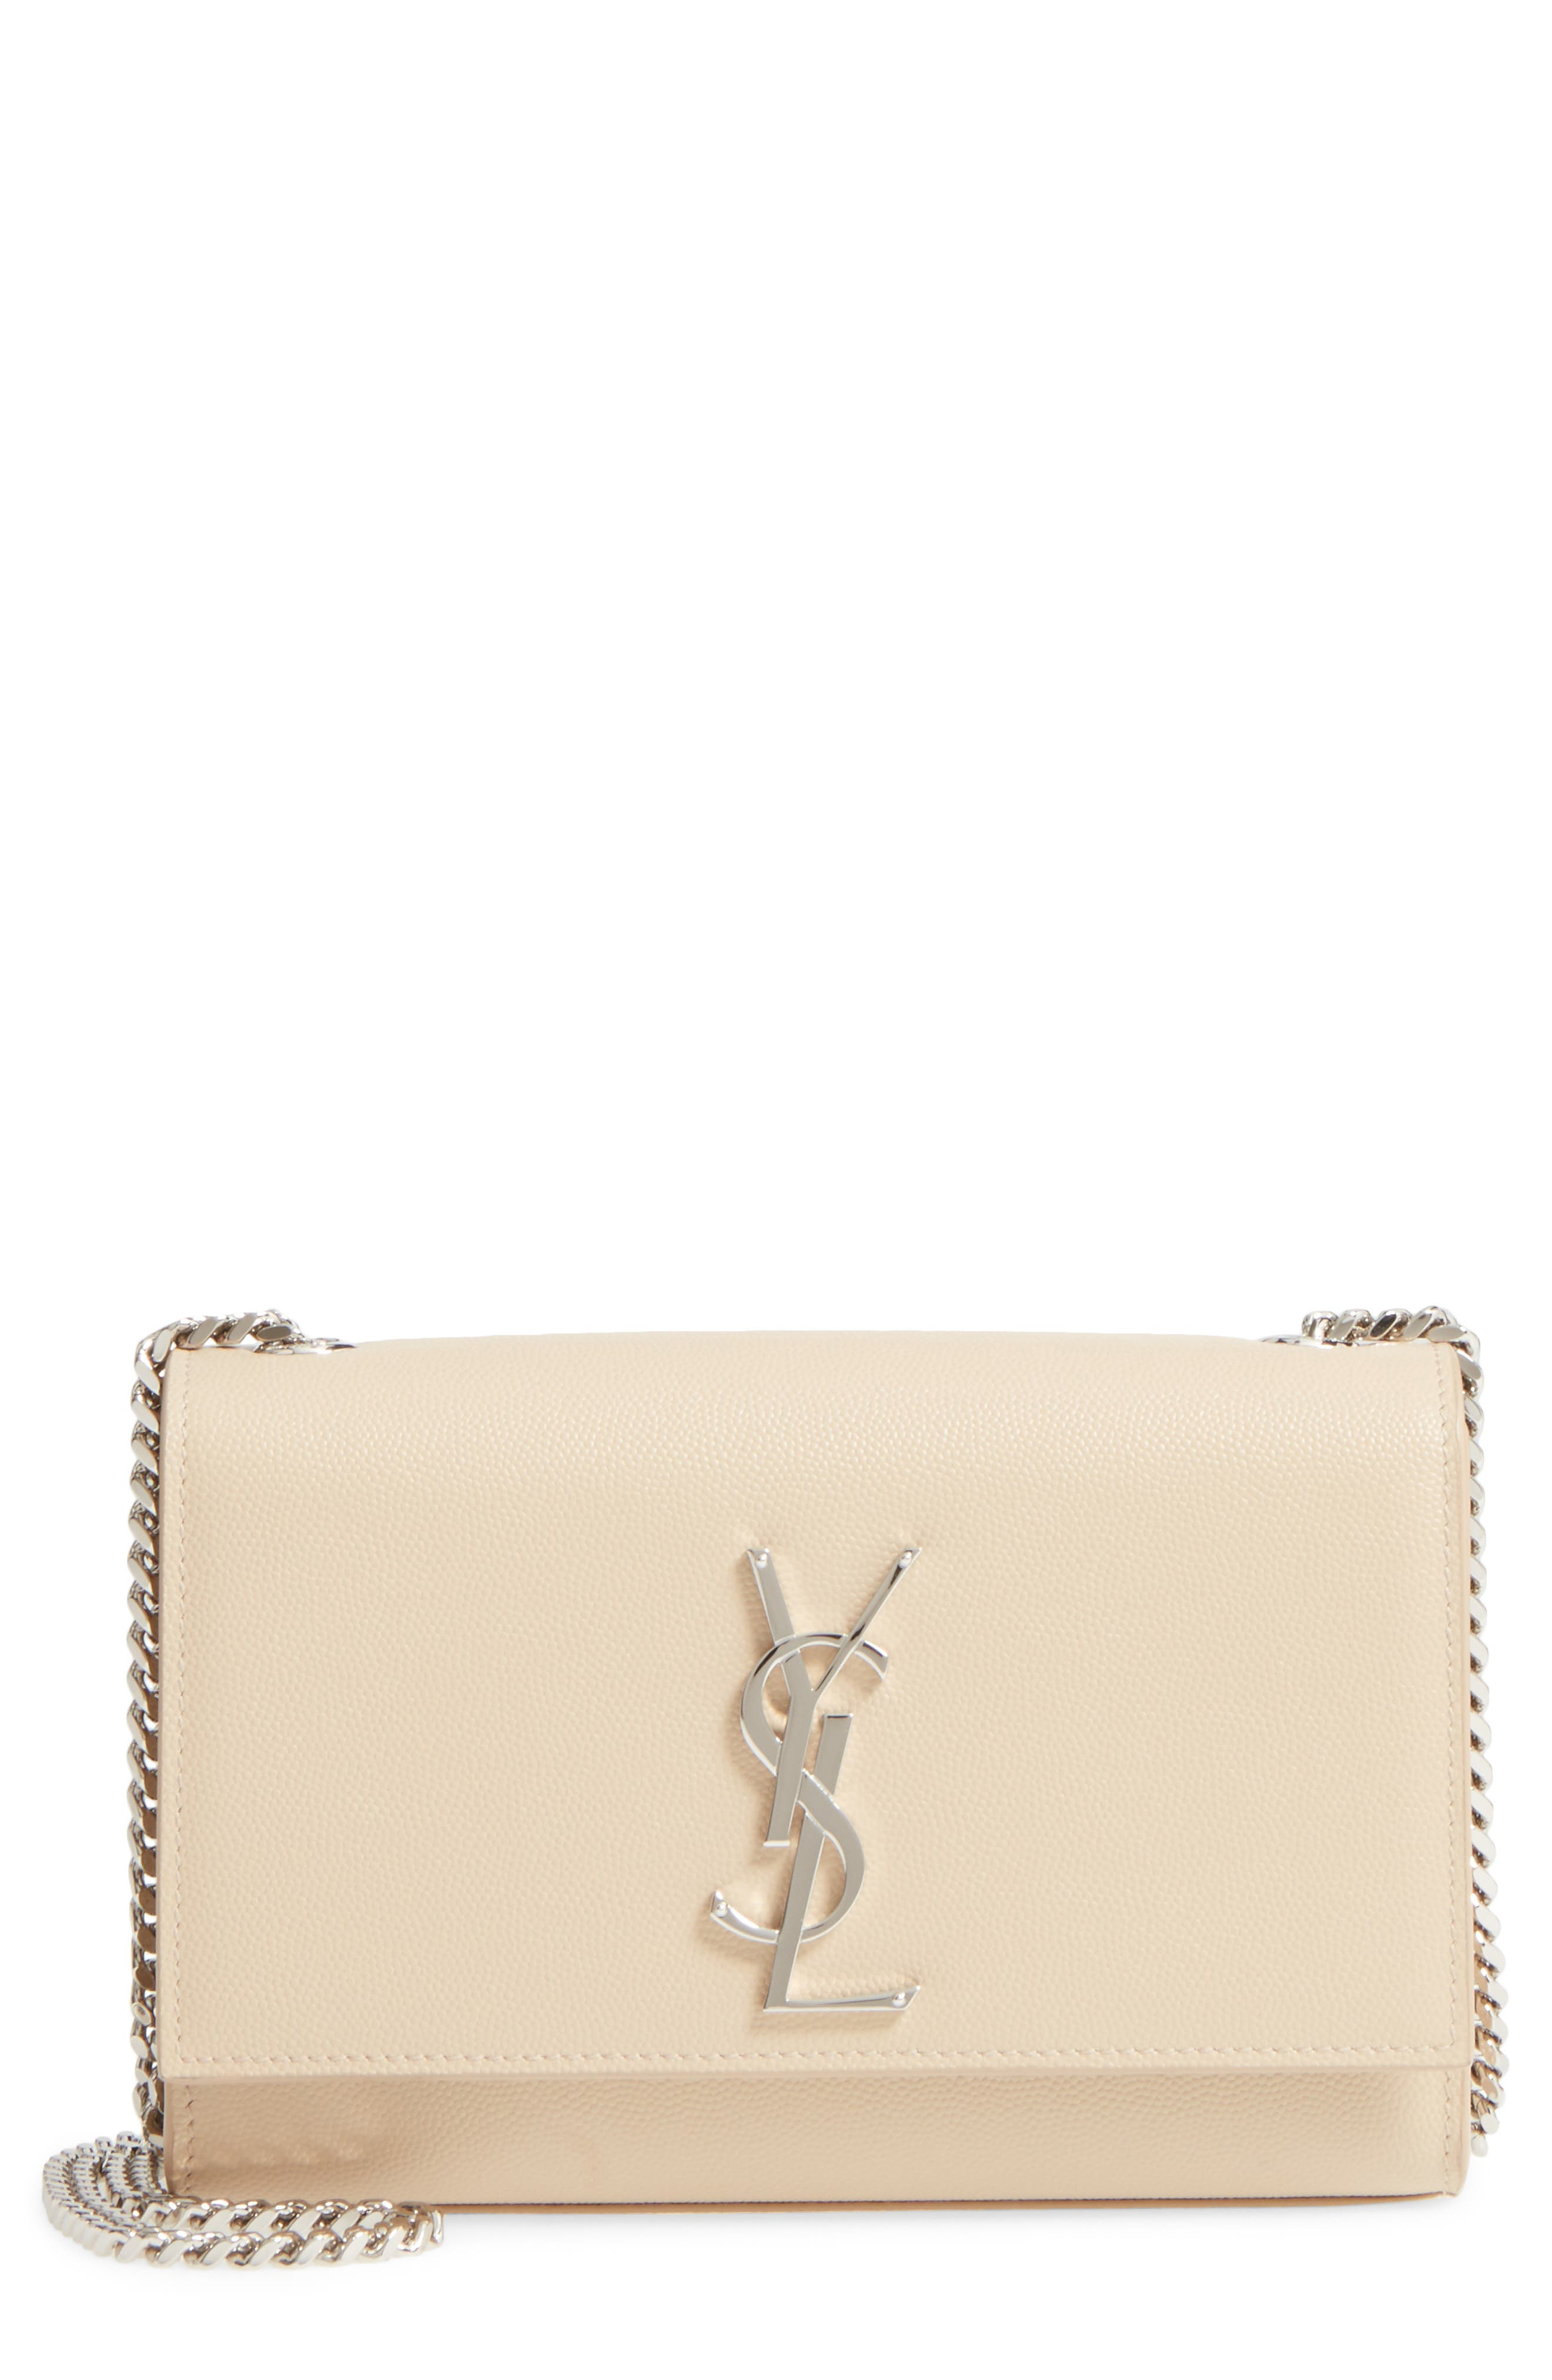 Main Image - Saint Laurent Small Kate Grained Leather Crossbody Bag